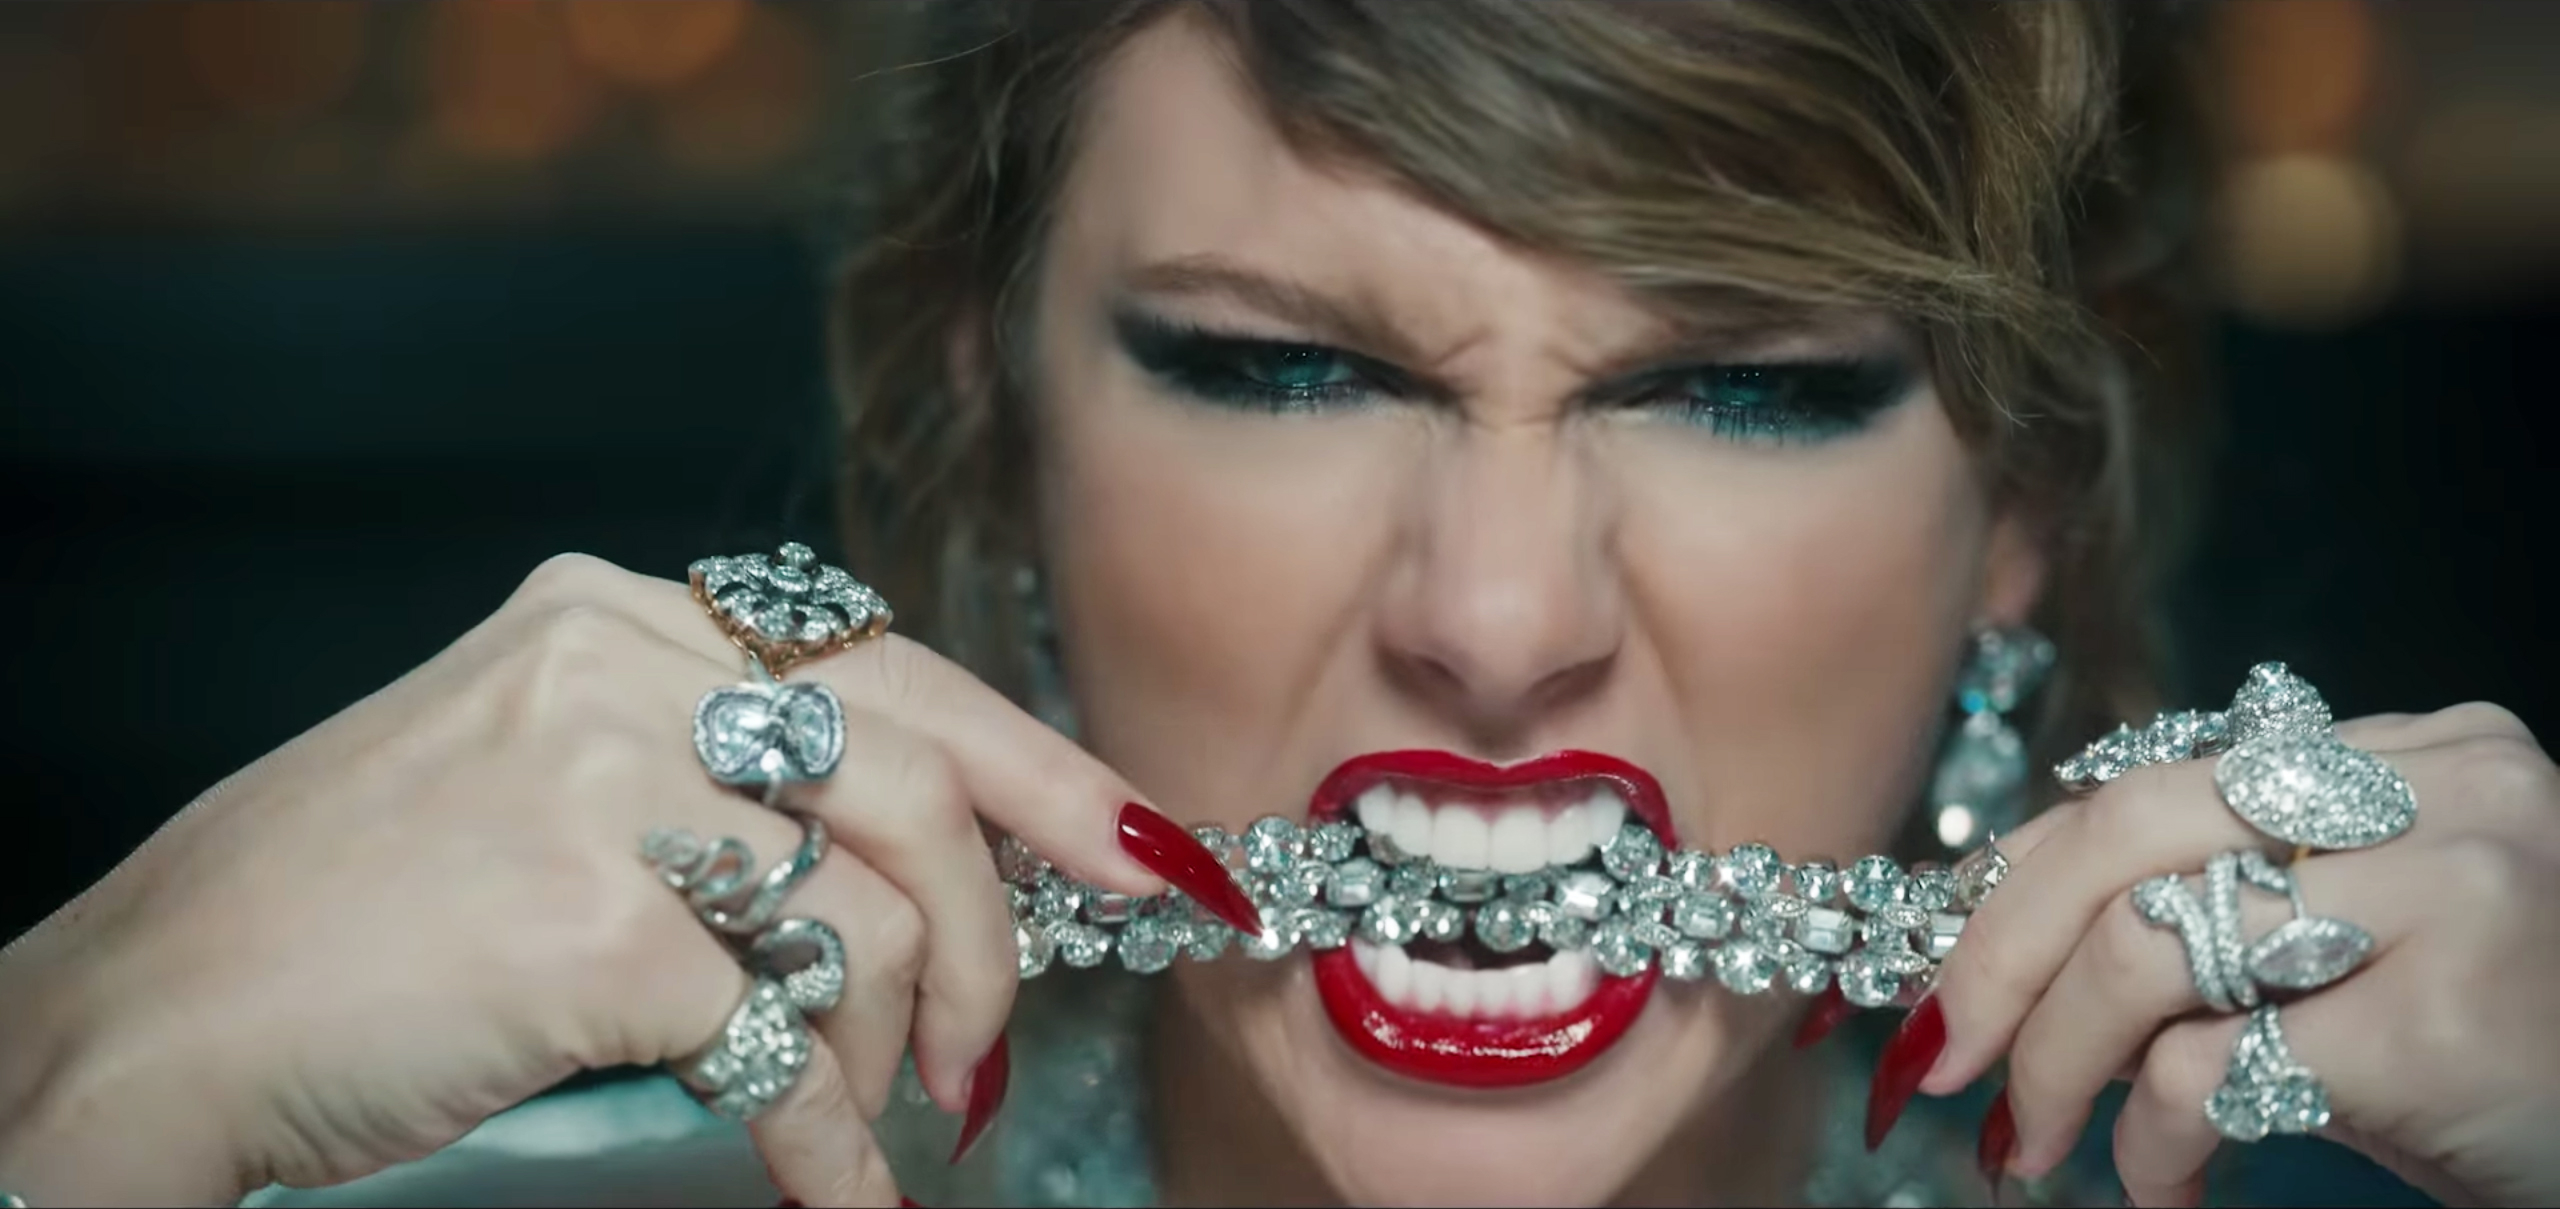 Taylor Swifts Look What You Made Me Do Video Decoded Rolling Stone